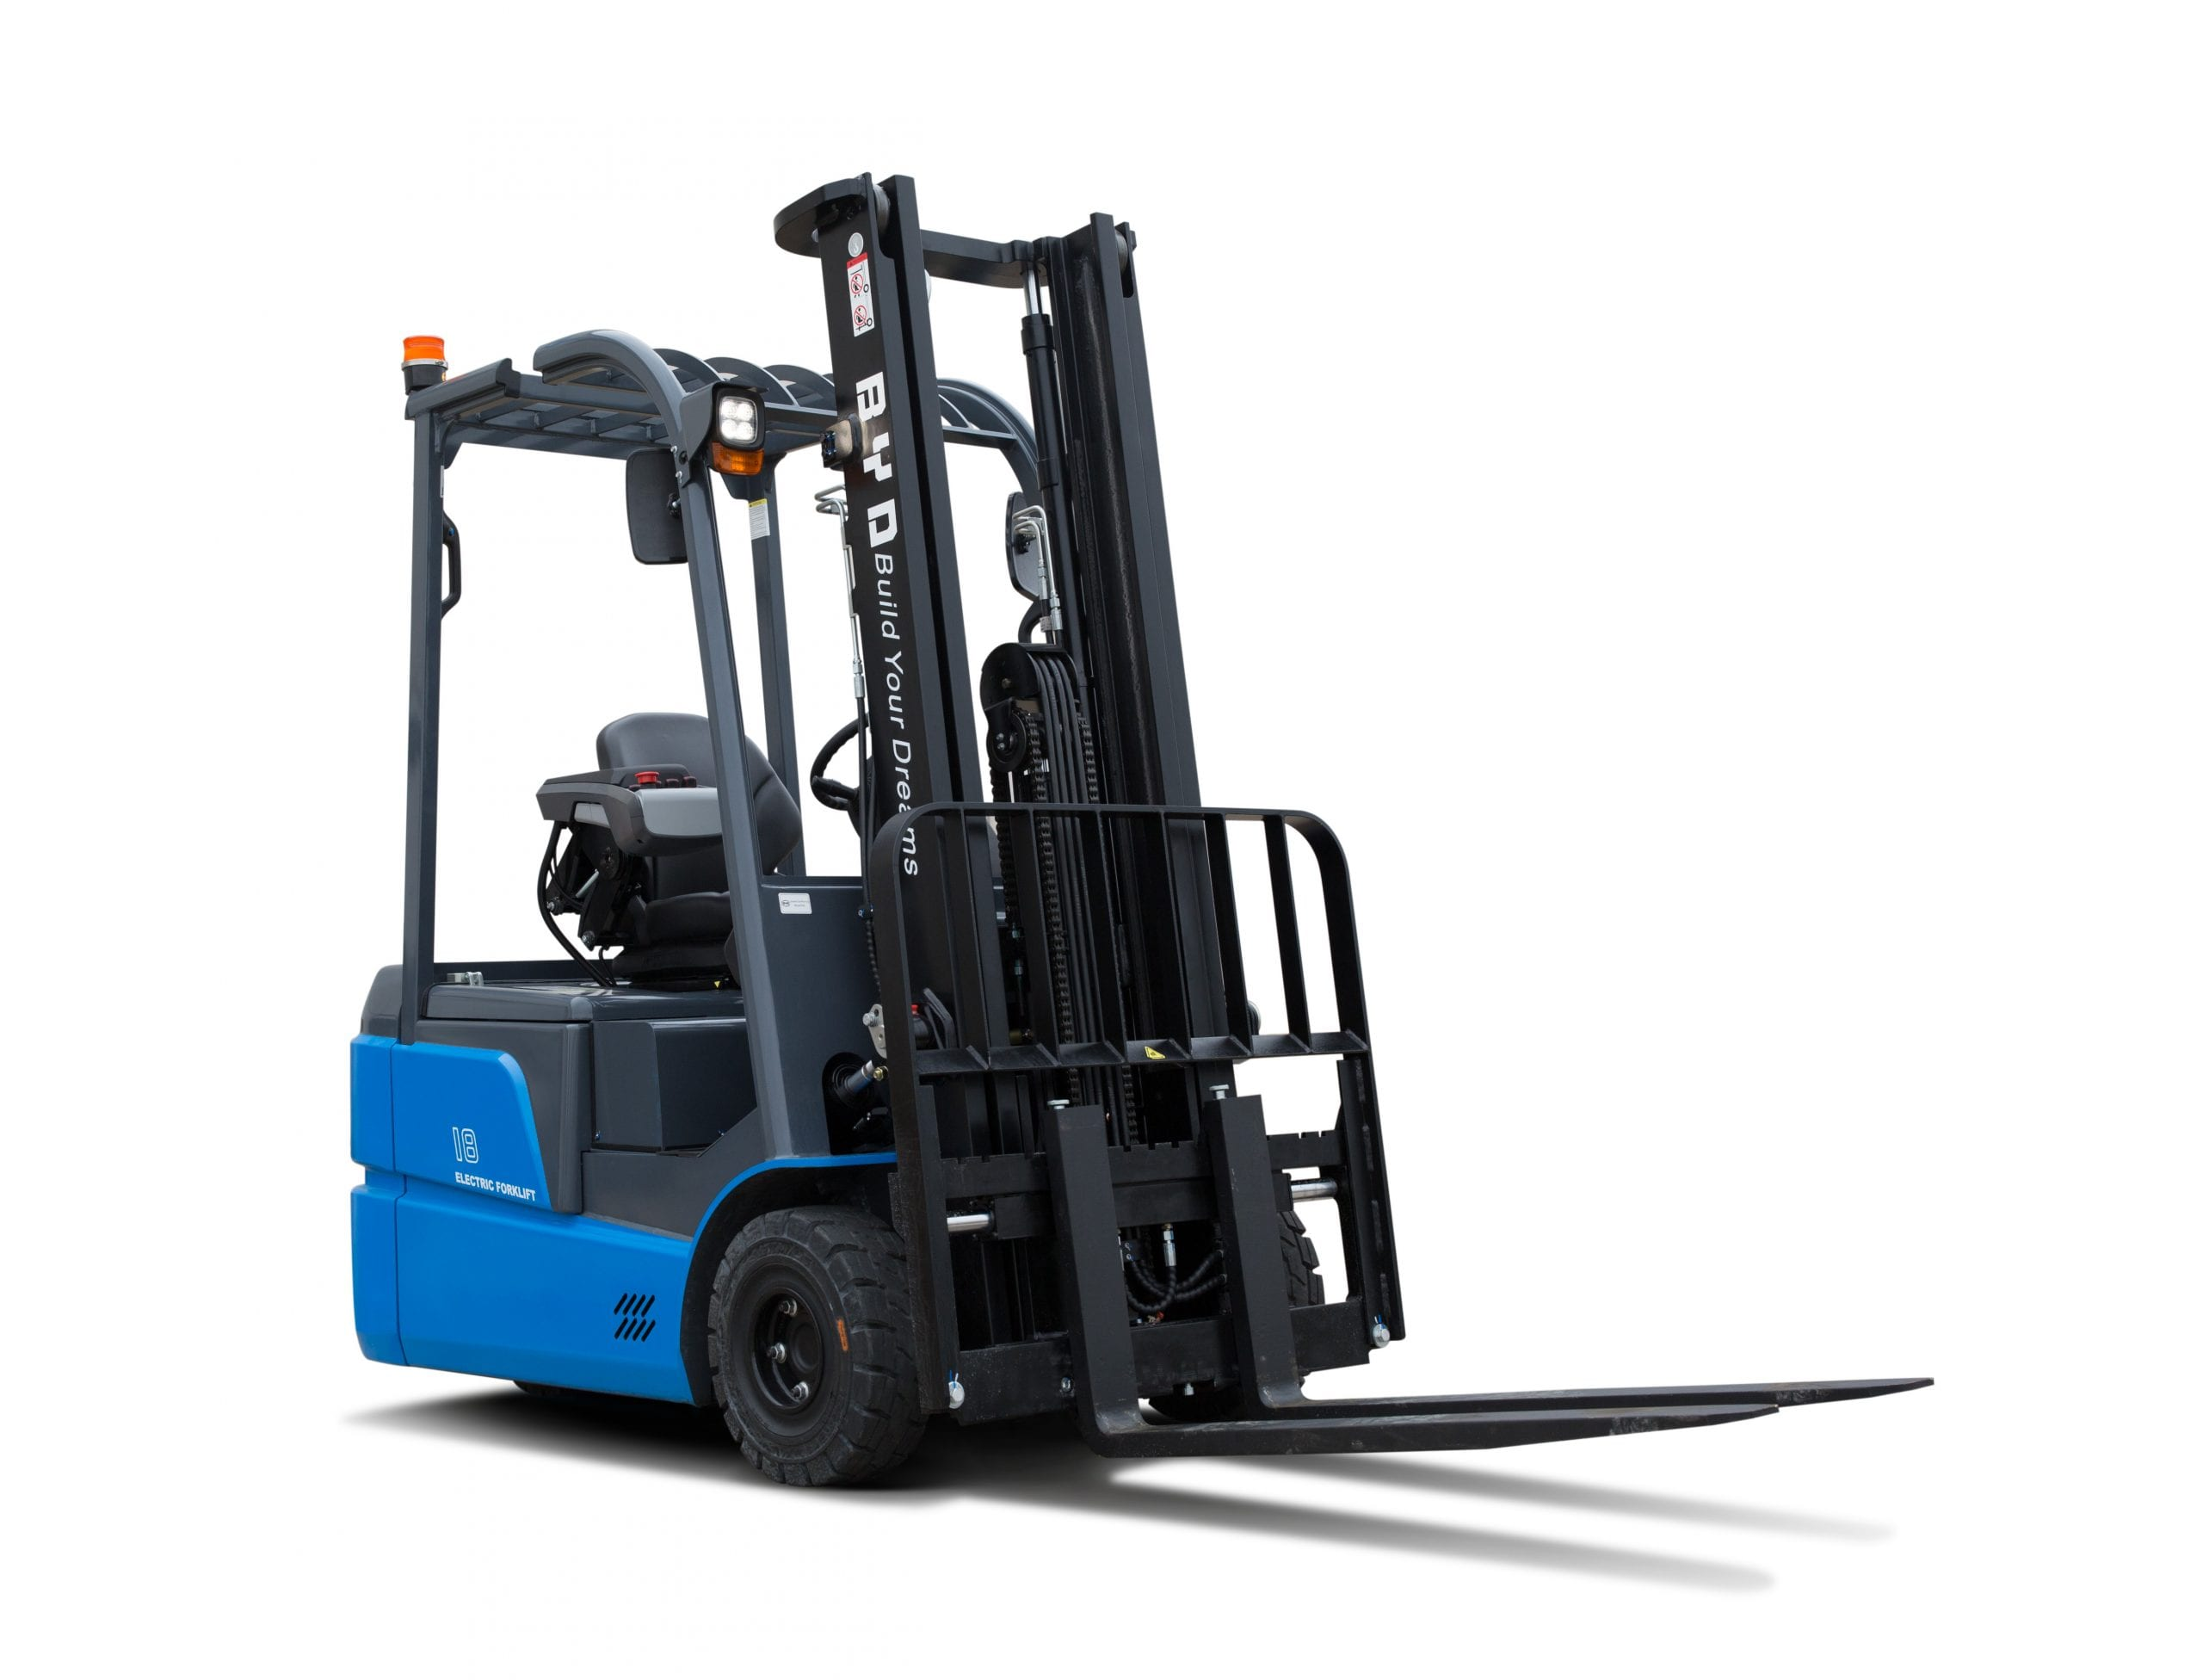 BYD ECB18 Iron Phosphate Forklift for Sale in UK, in areas like Leicester, Northampton, Nottingham, Birmingham, Derby, Warwick, West Midlands and East Midlands